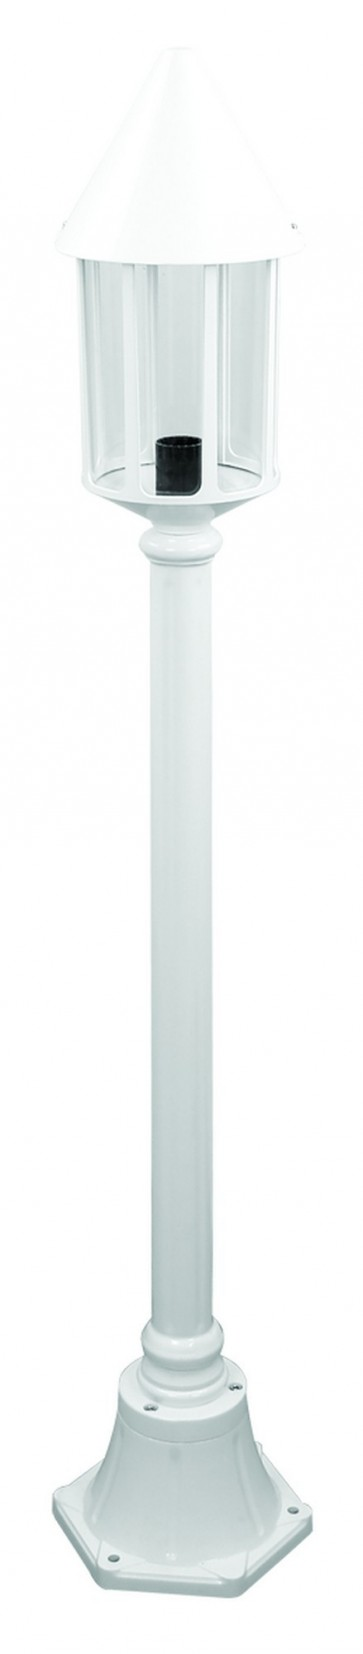 Hannover Small One Light Outdoor Post Lantern Domus Lighting